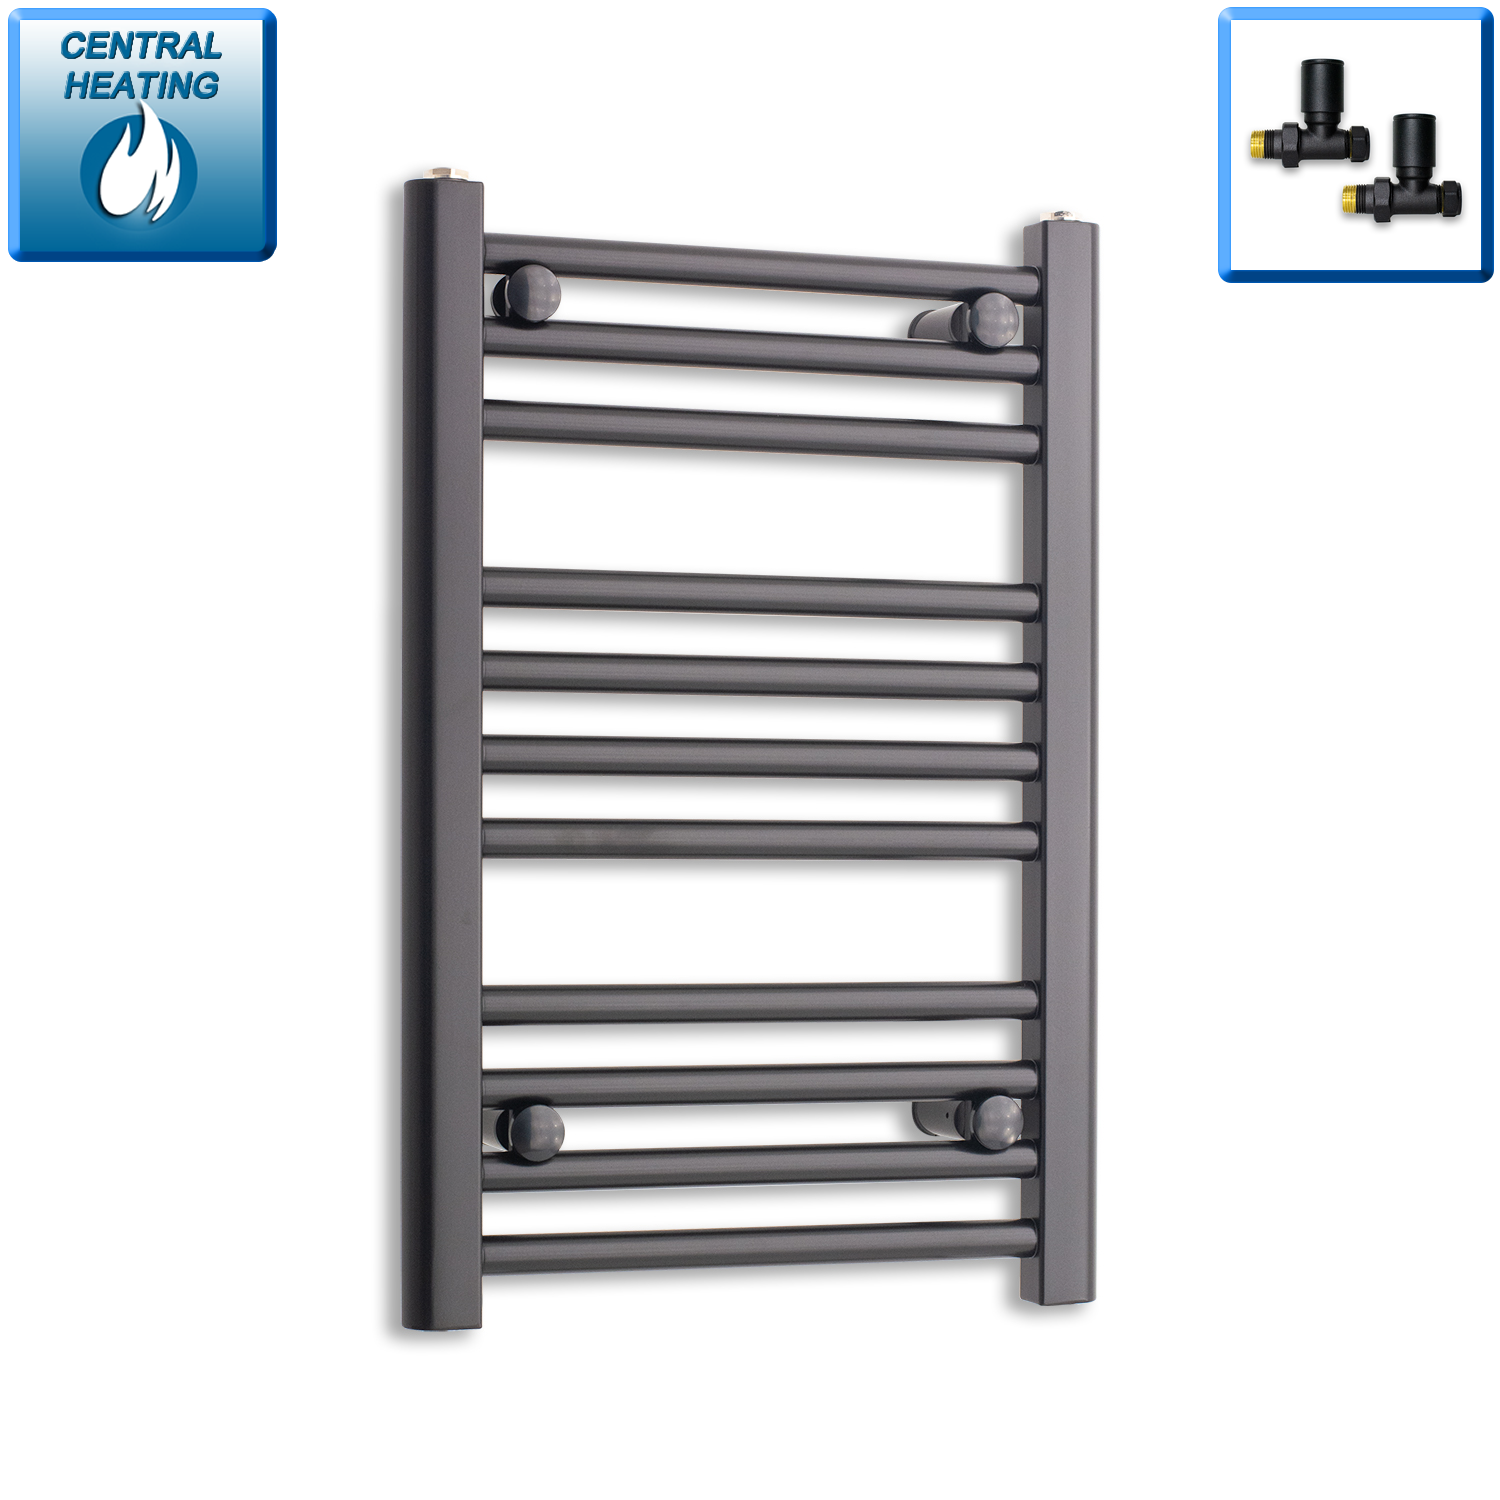 400mm Wide 600mm High Flat Black Heated Towel Rail Radiator,With Straight Valve